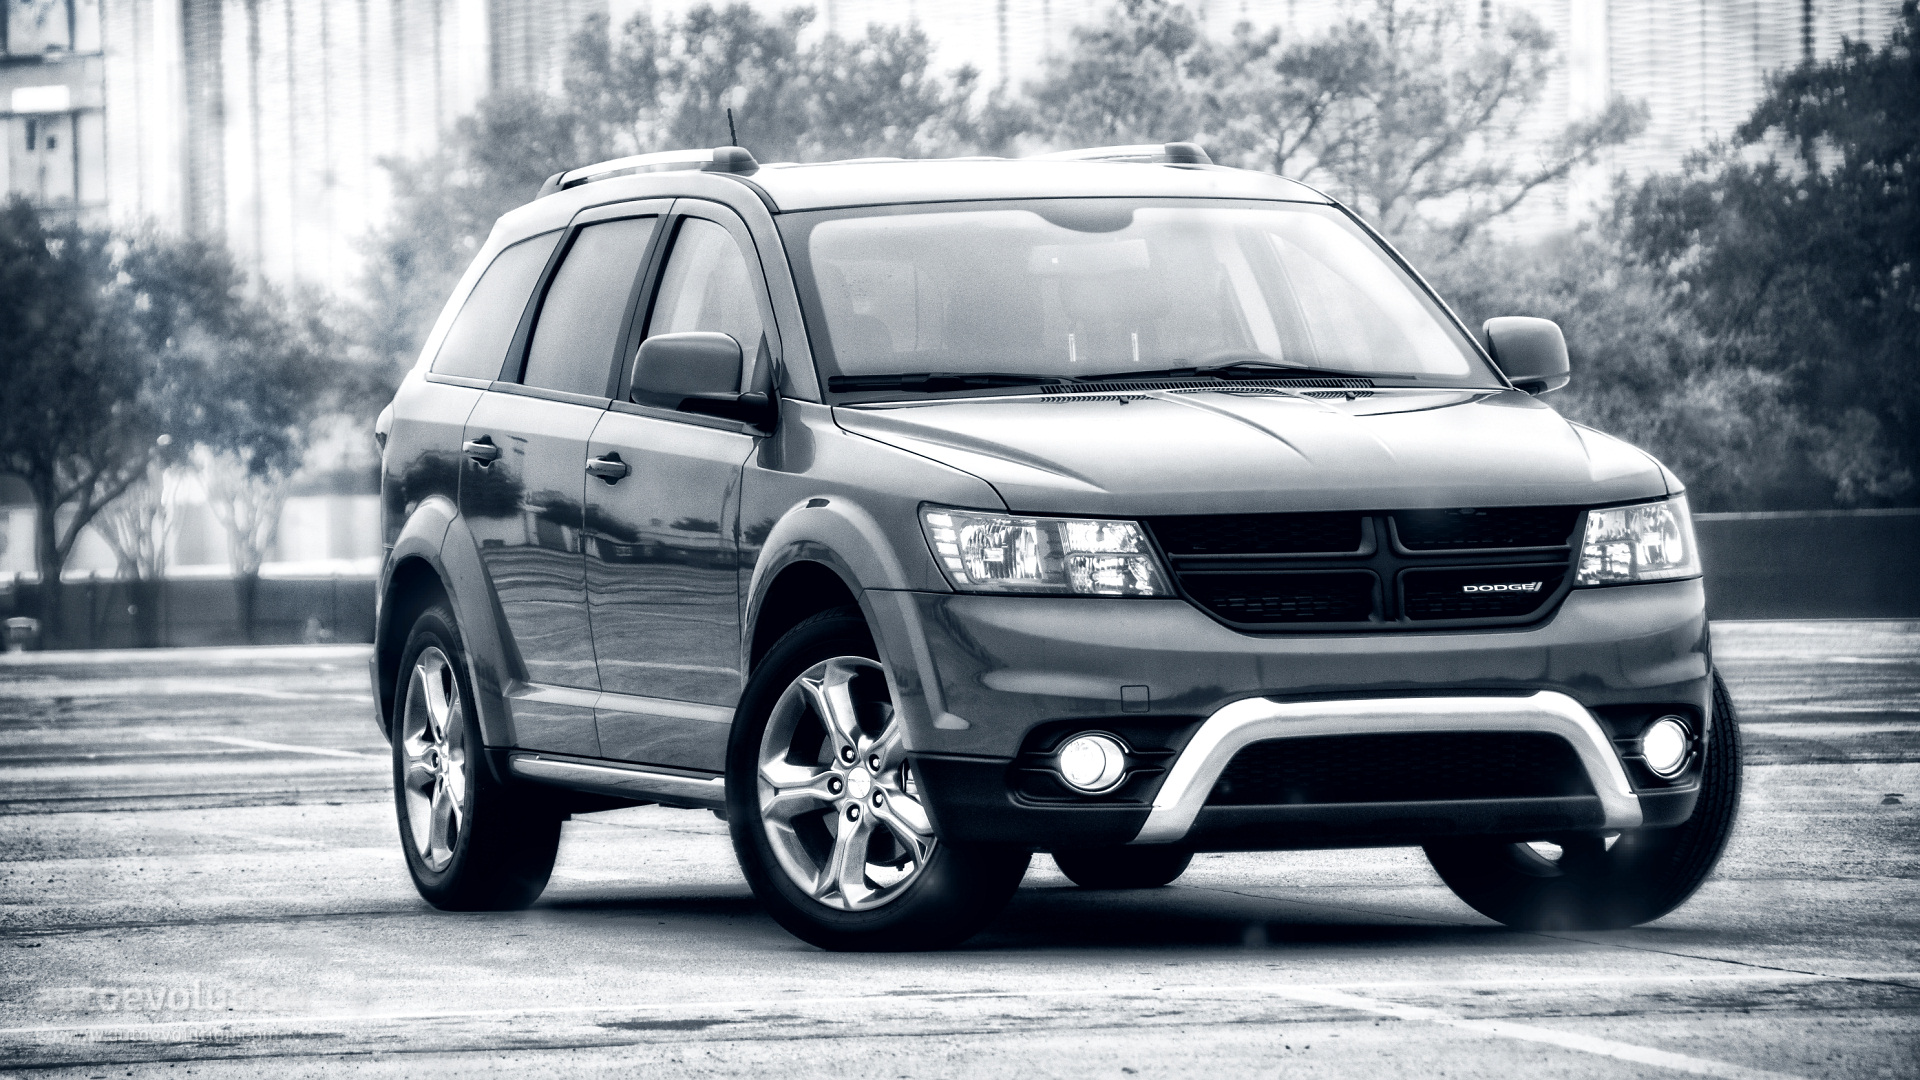 Four Cars Wallpapers 2015 Dodge Journey Crossroad Hd Wallpapers The Budget